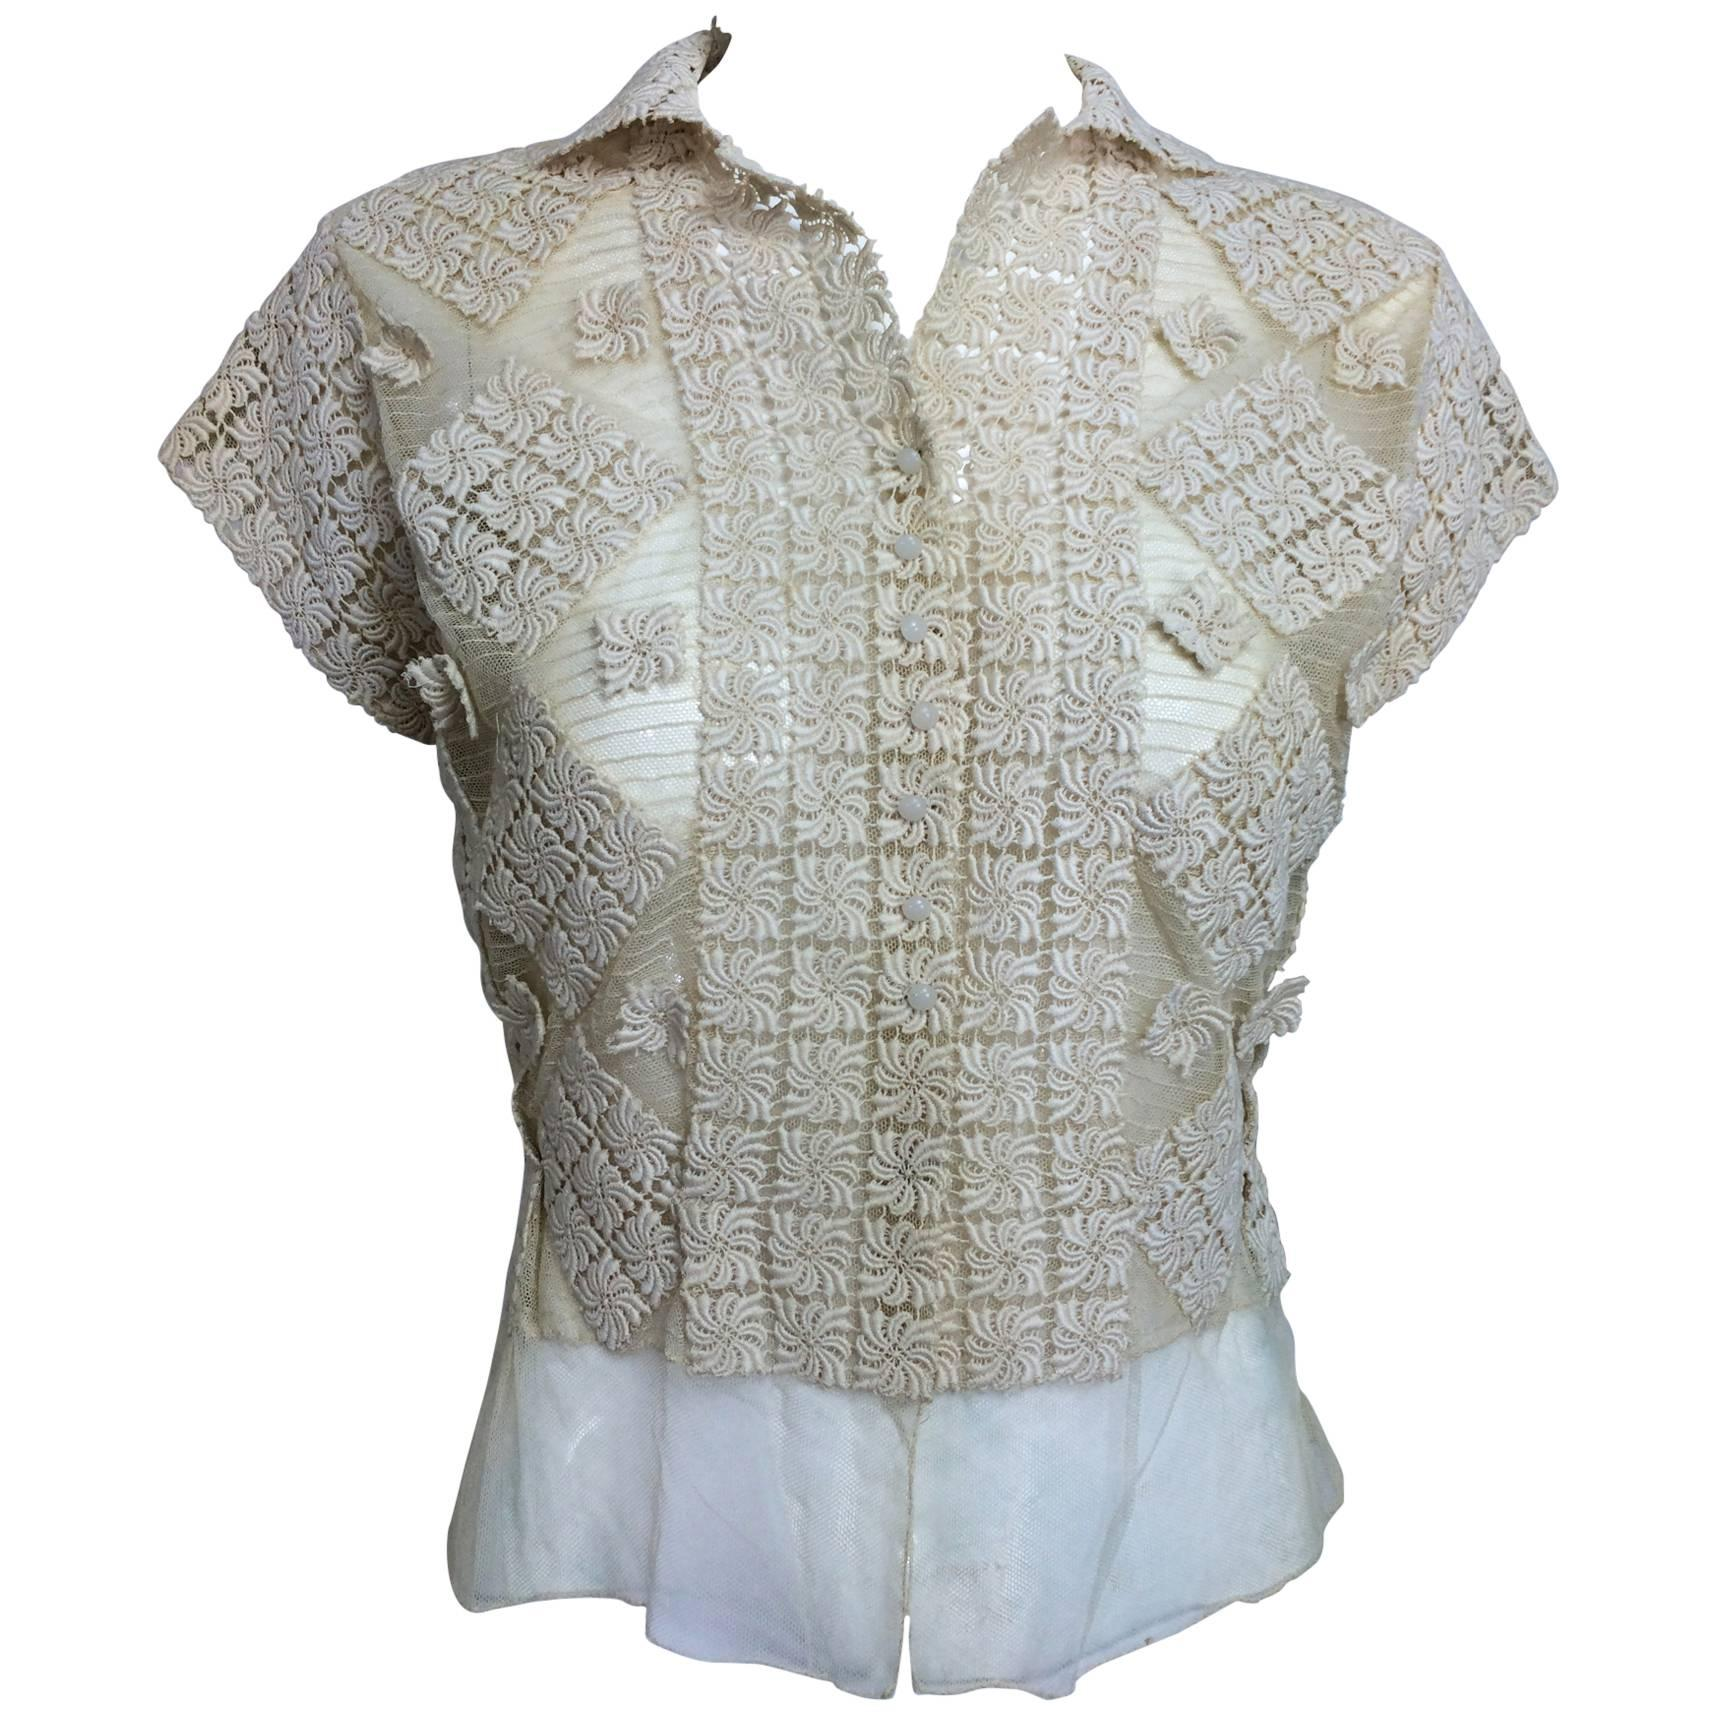 253454f55193cd Madeira handmade cut work lace embroidered blouse in off white 1950s For  Sale at 1stdibs